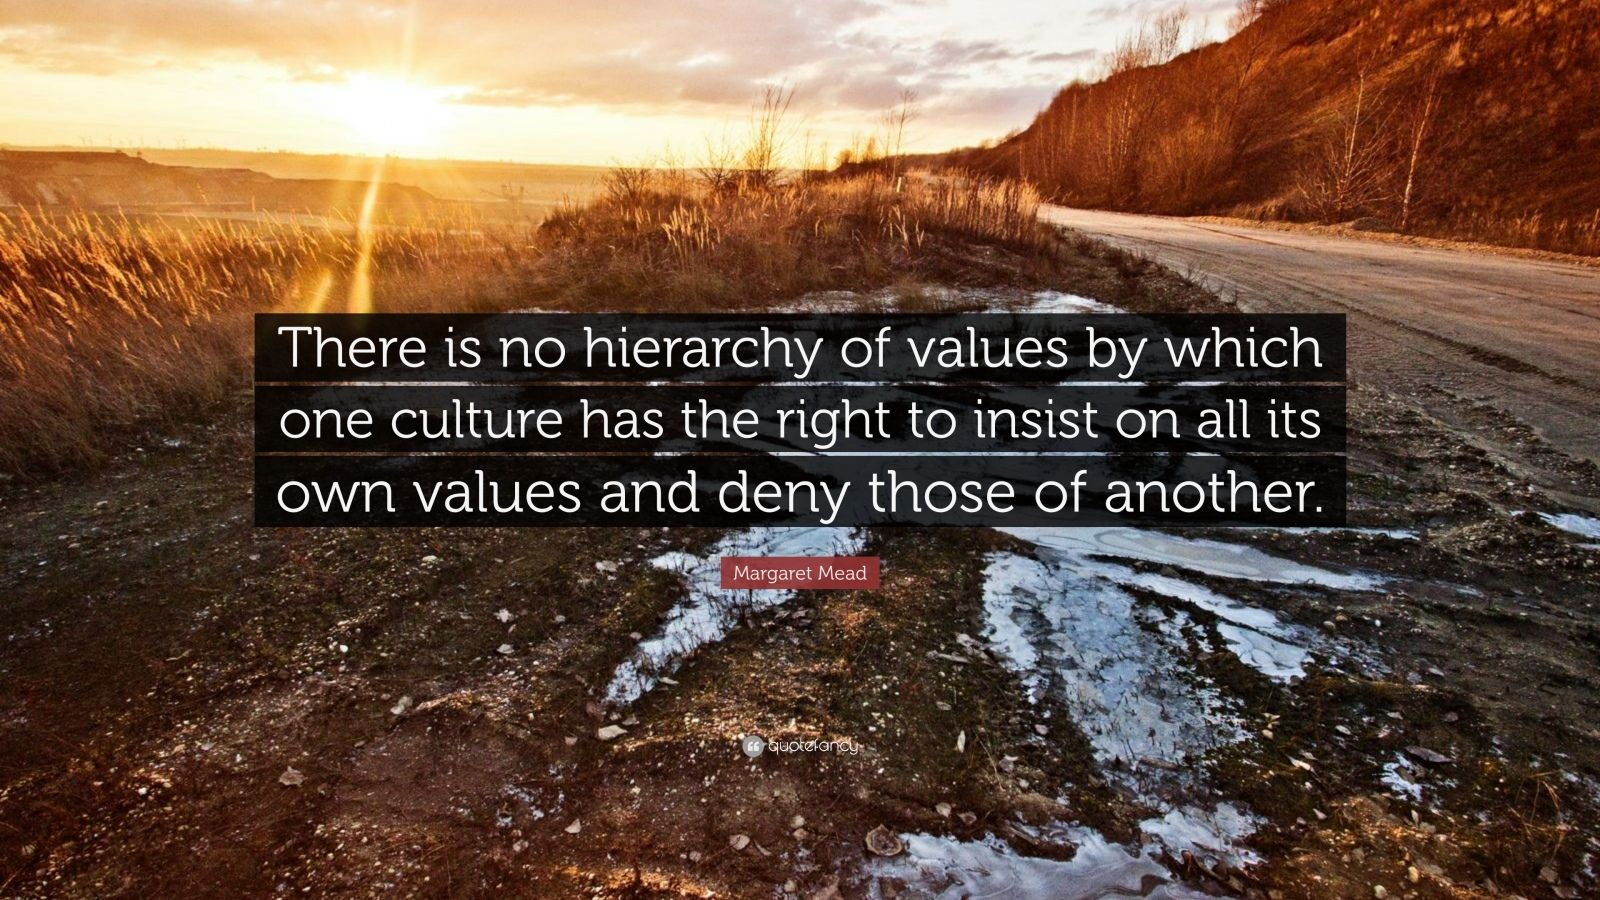 """Margaret Mead Quote: """"There is no hierarchy of values by which one culture has the right to insist on all its own values and deny those of another."""""""